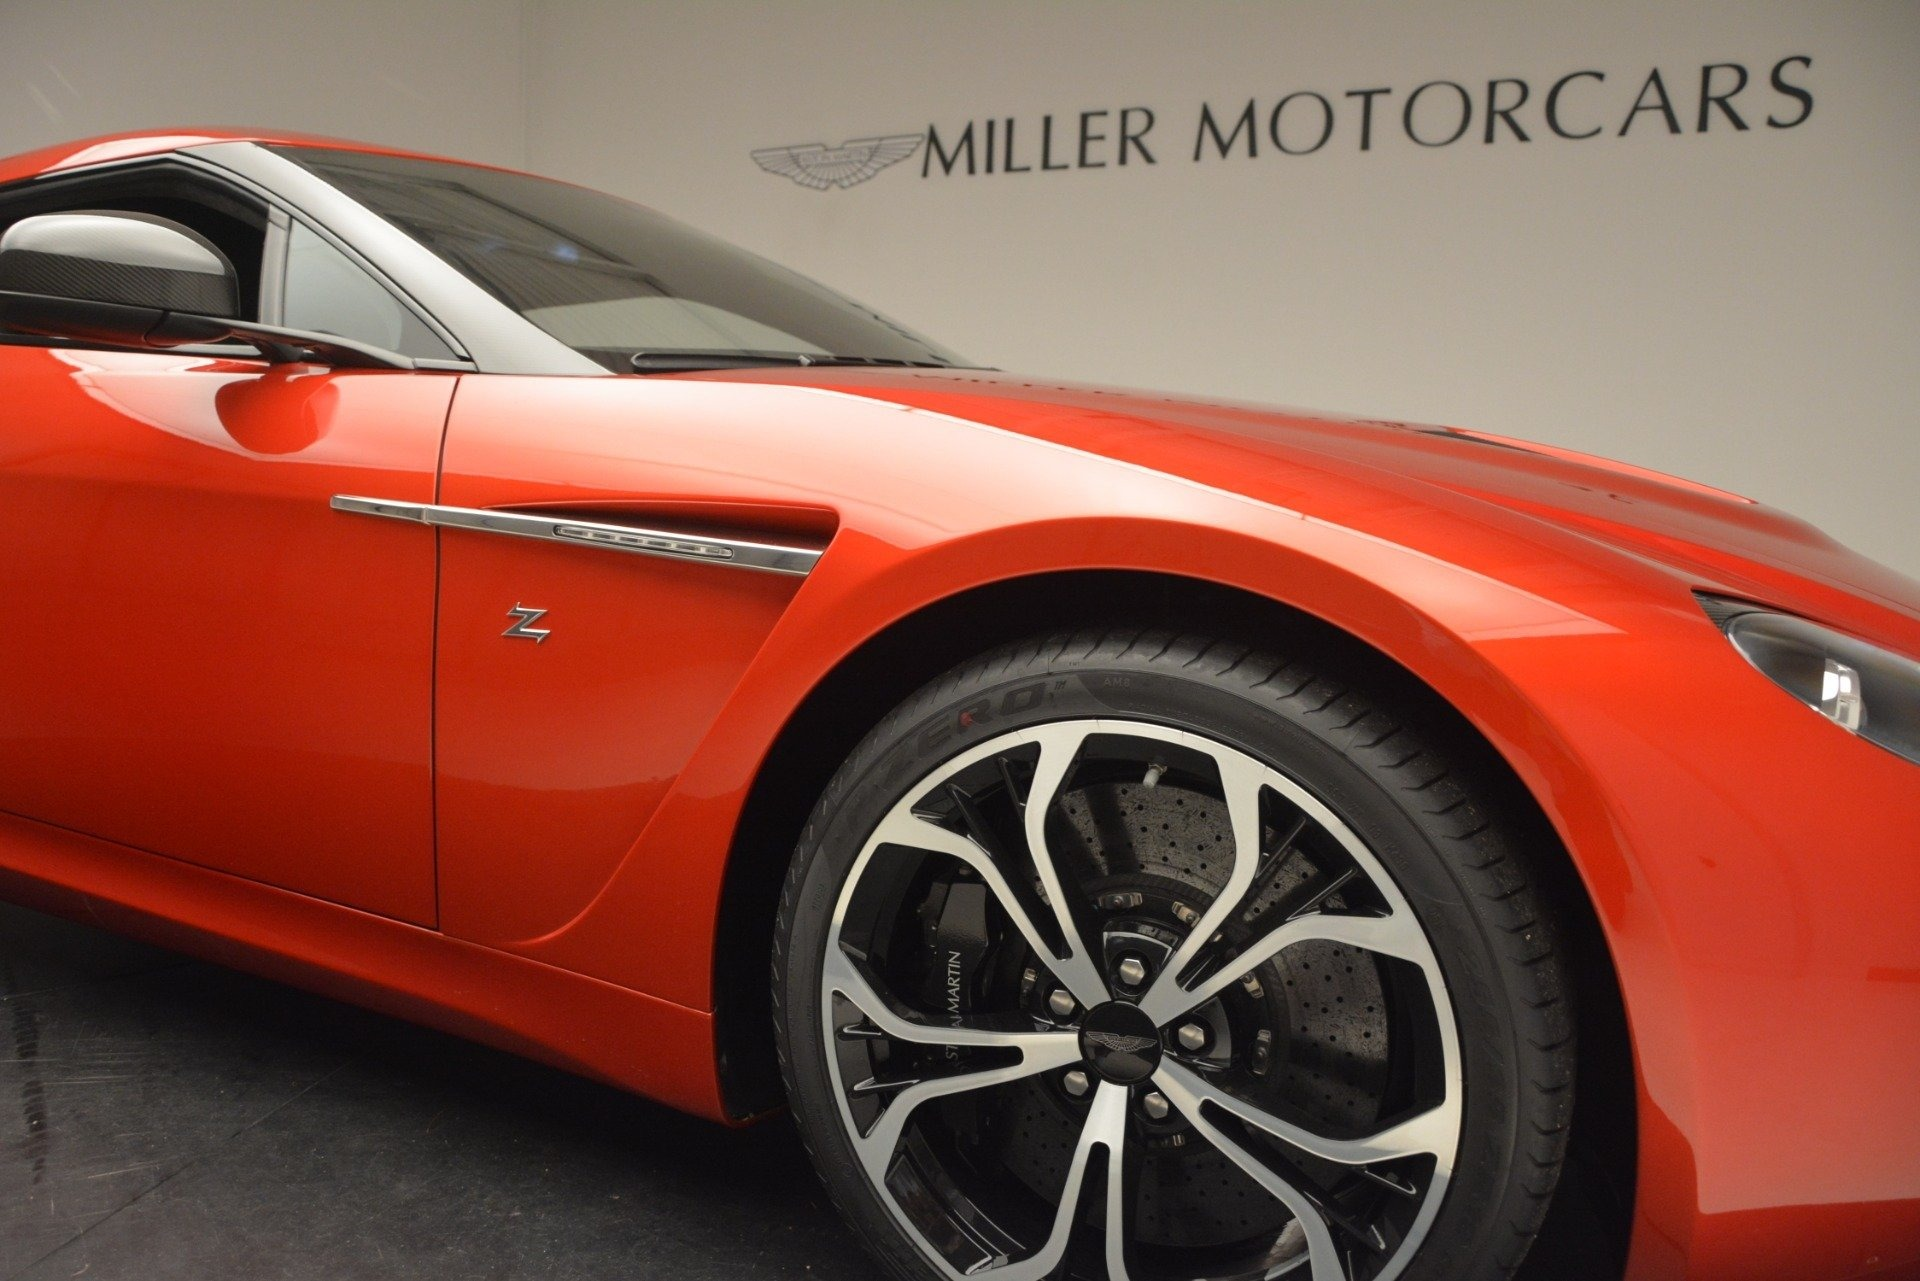 Used 2013 Aston Martin V12 Zagato Coupe For Sale In Westport, CT 3181_p22